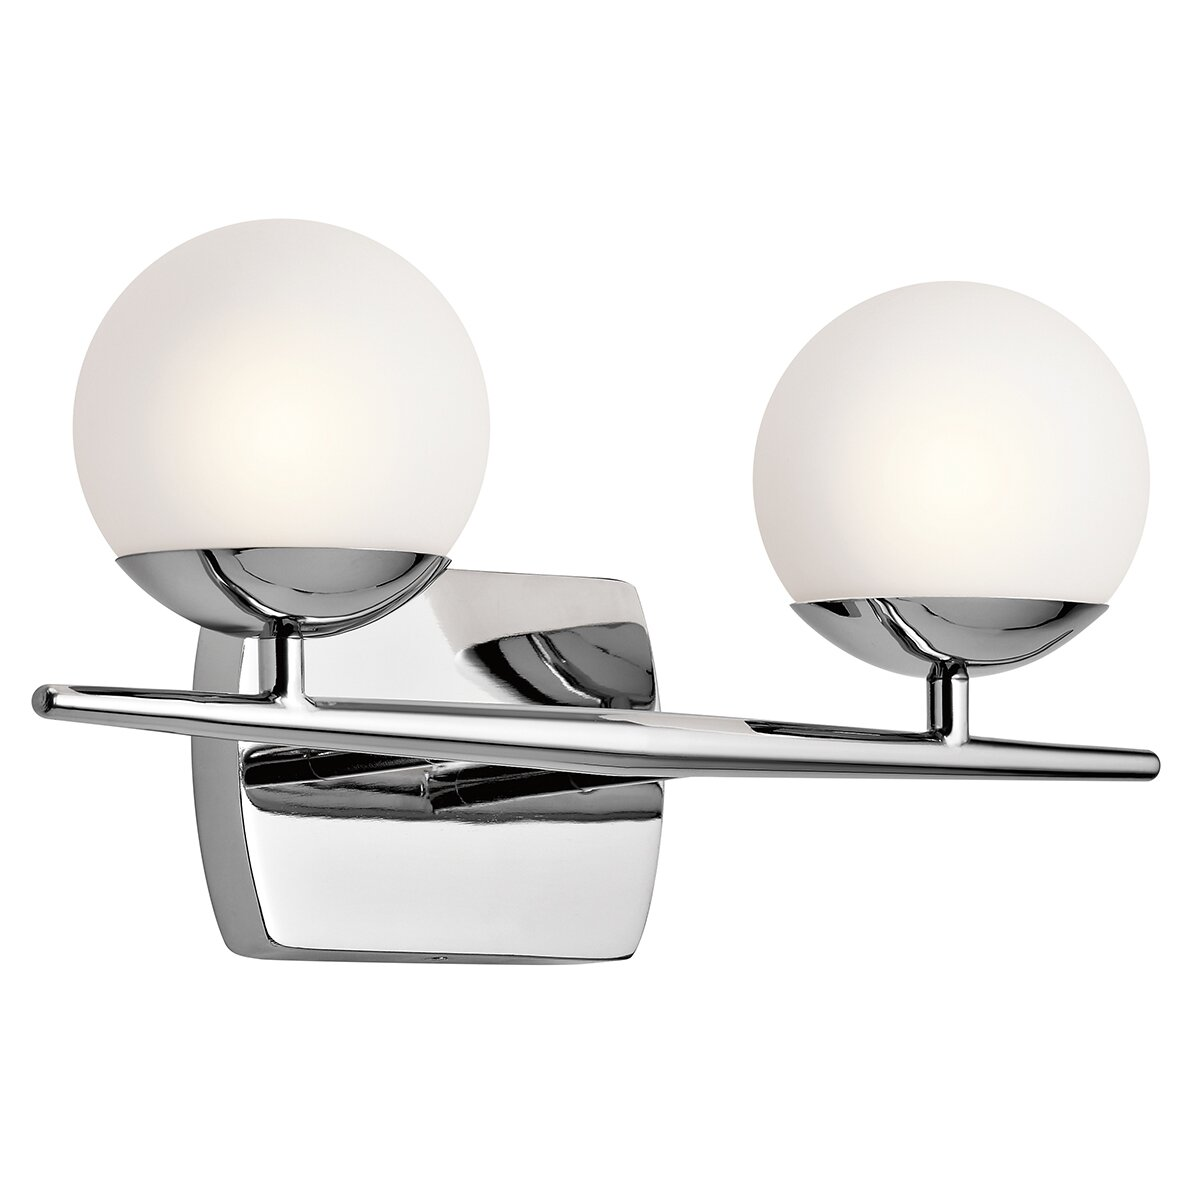 Bathroom vanity lights brushed nickel - Griffe 2 Light Vanity Light